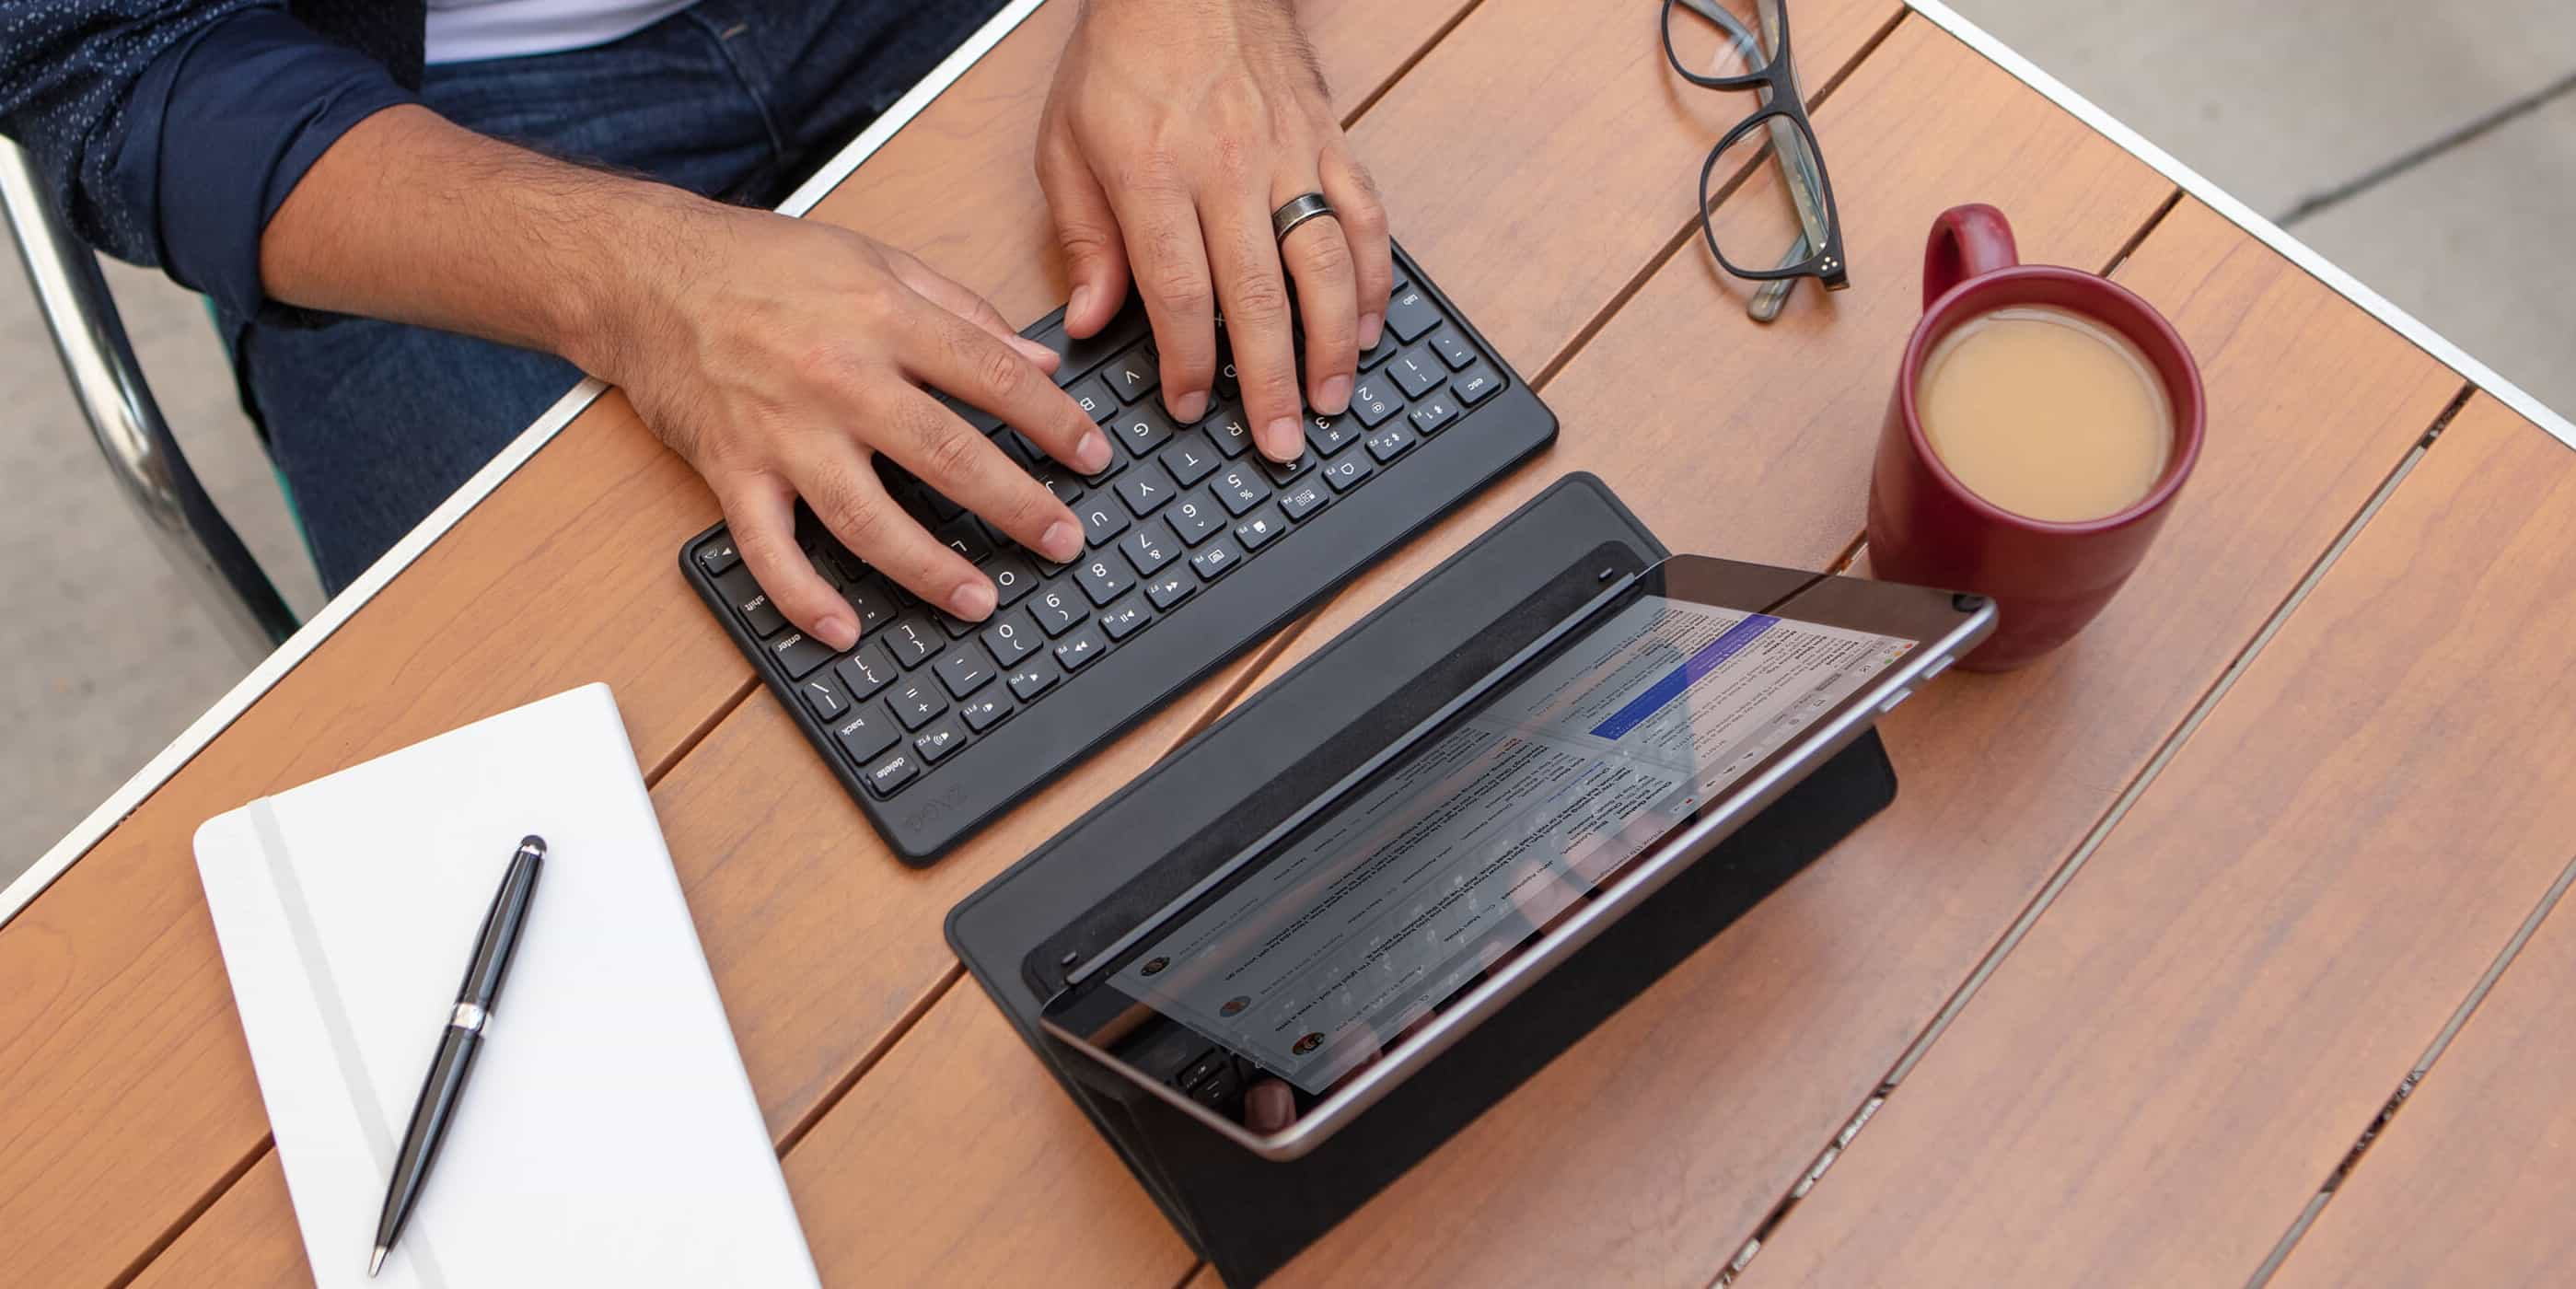 Touch type on your iPad or iPhone with the Zagg Flex universal keyboard.